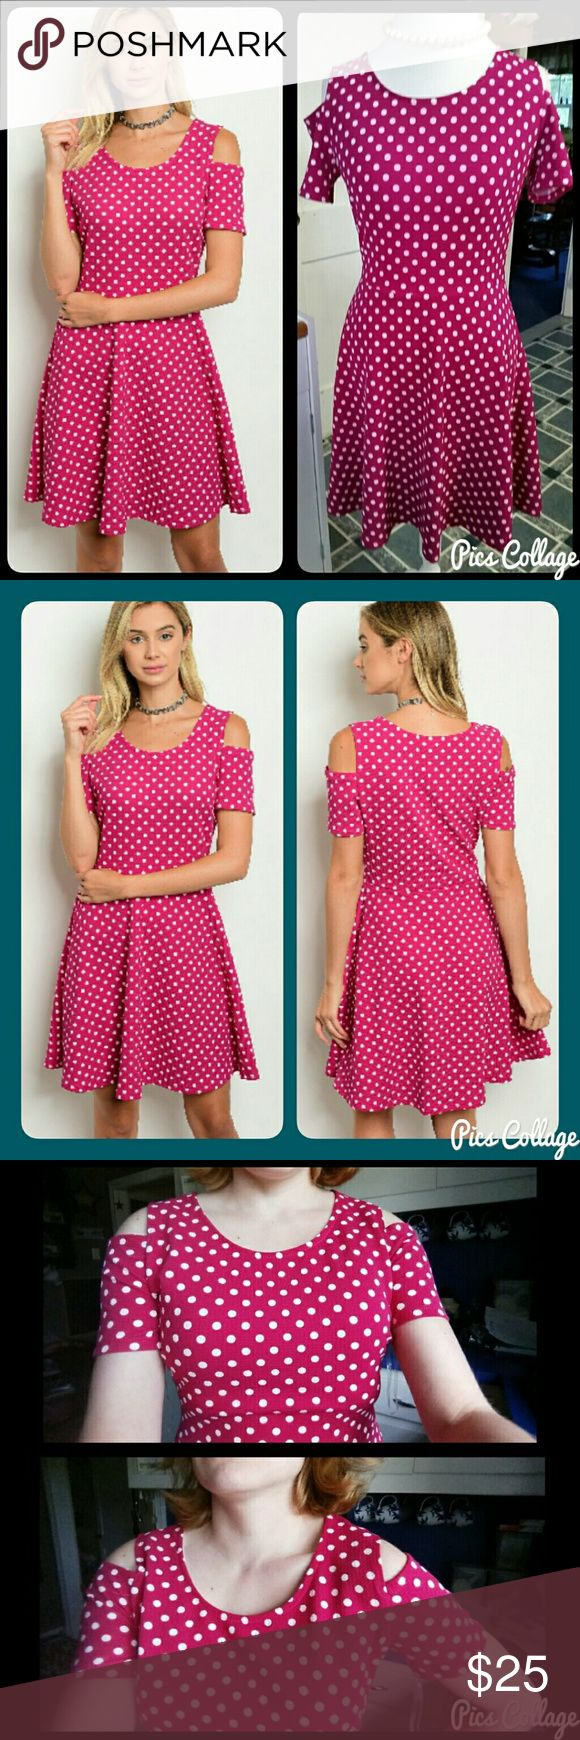 Magenta Polka-Dot Dress Magenta dress with white polka-dots and cold-shoulder design. Fabric is puckered all over. Dream at waist for slightly flared effect. Fits true to size. Polyester/spandex. Light, swingy, & fun! Jewely's Justifiables Dresses